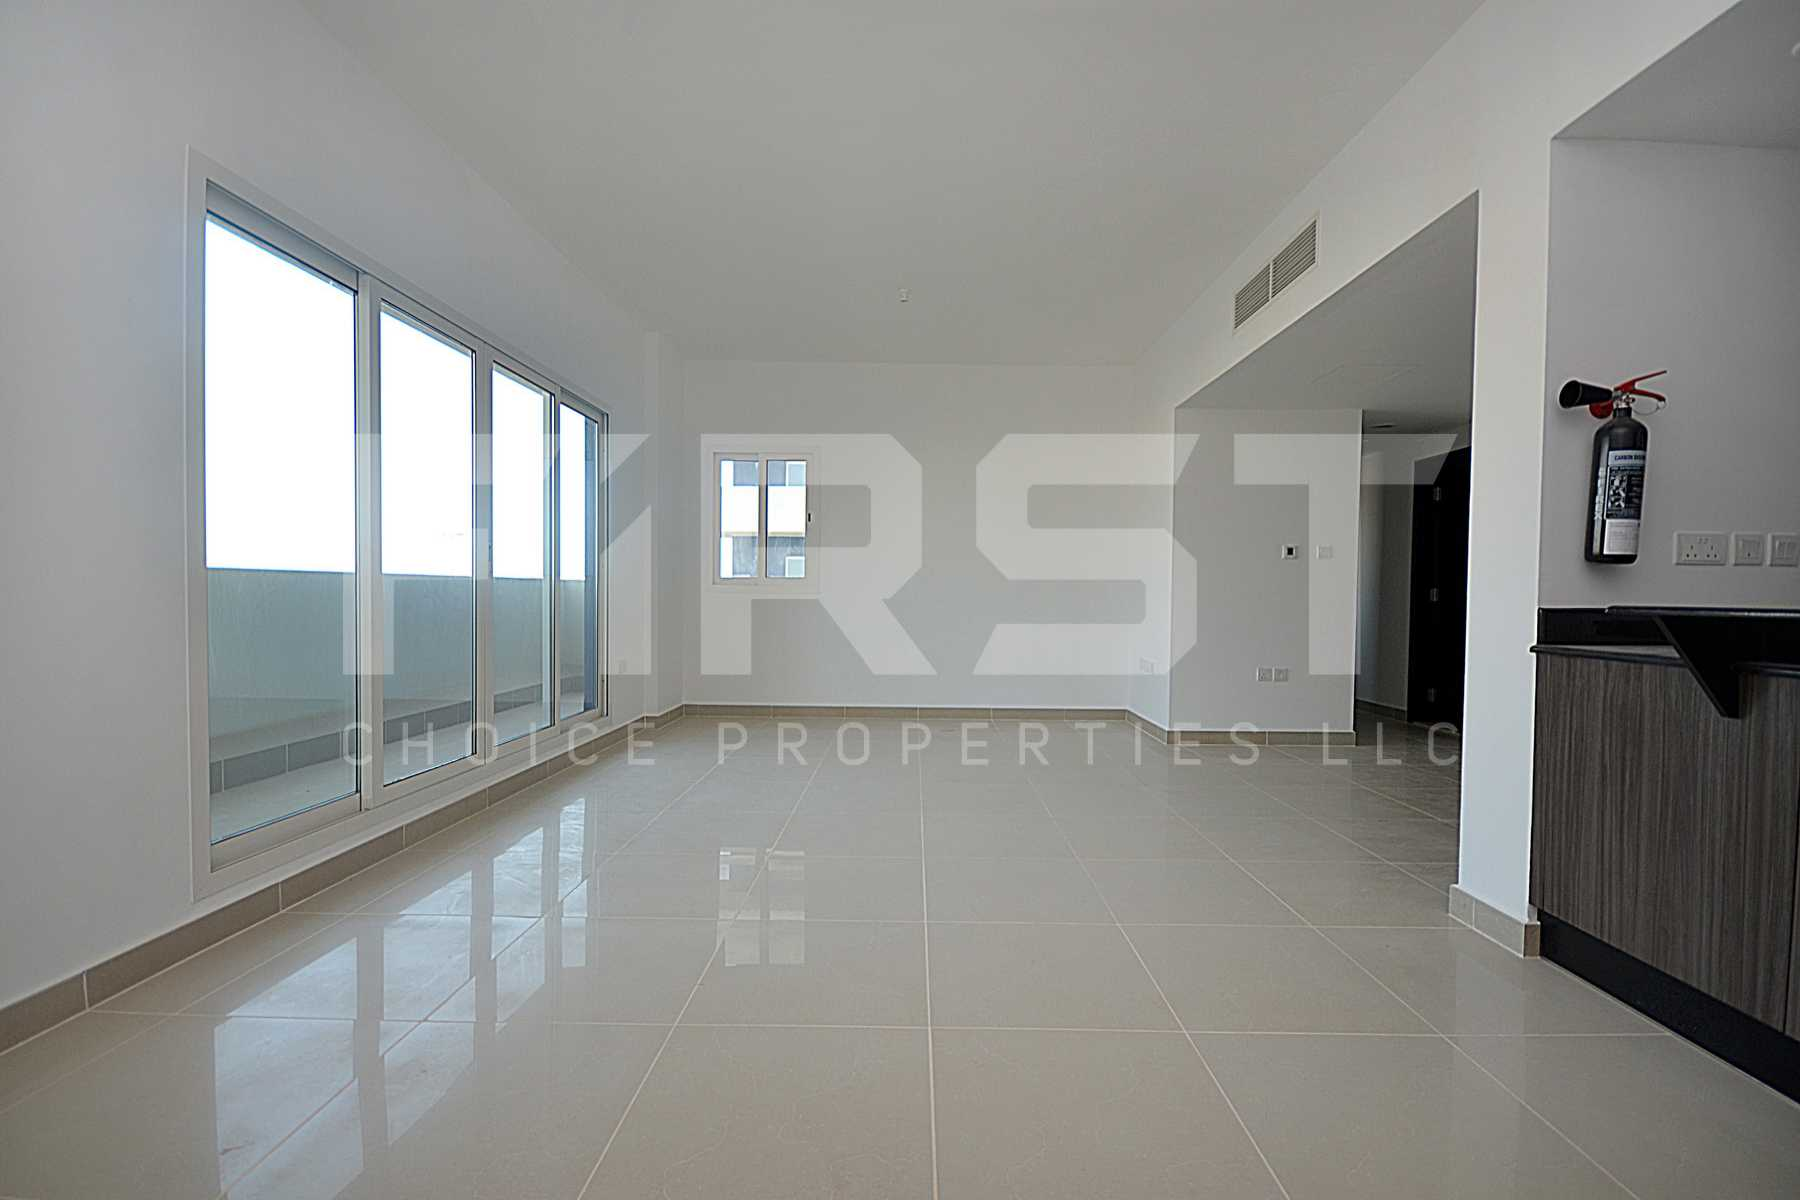 4. Internal Photo of 3 Bedroom Apartment Type D Open Kitchen in Al Reef Downtown Al Reef Abu Dhabi UAE 145sq.m 1560 sq.ft (2).jpg